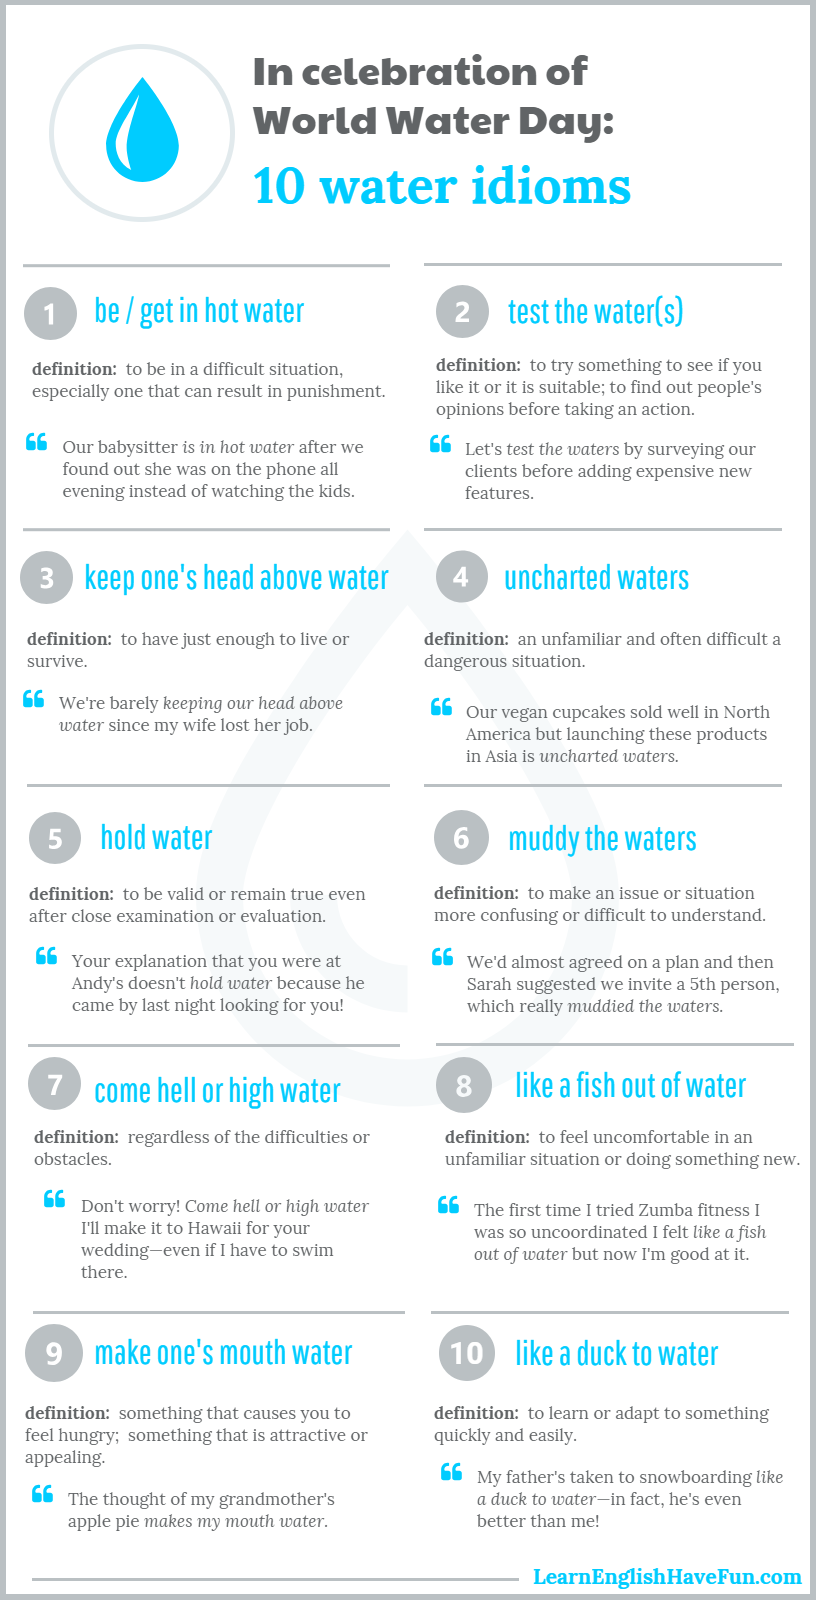 An infographic design of the 10 water idioms, with definitions and examples, that are listed on this website.